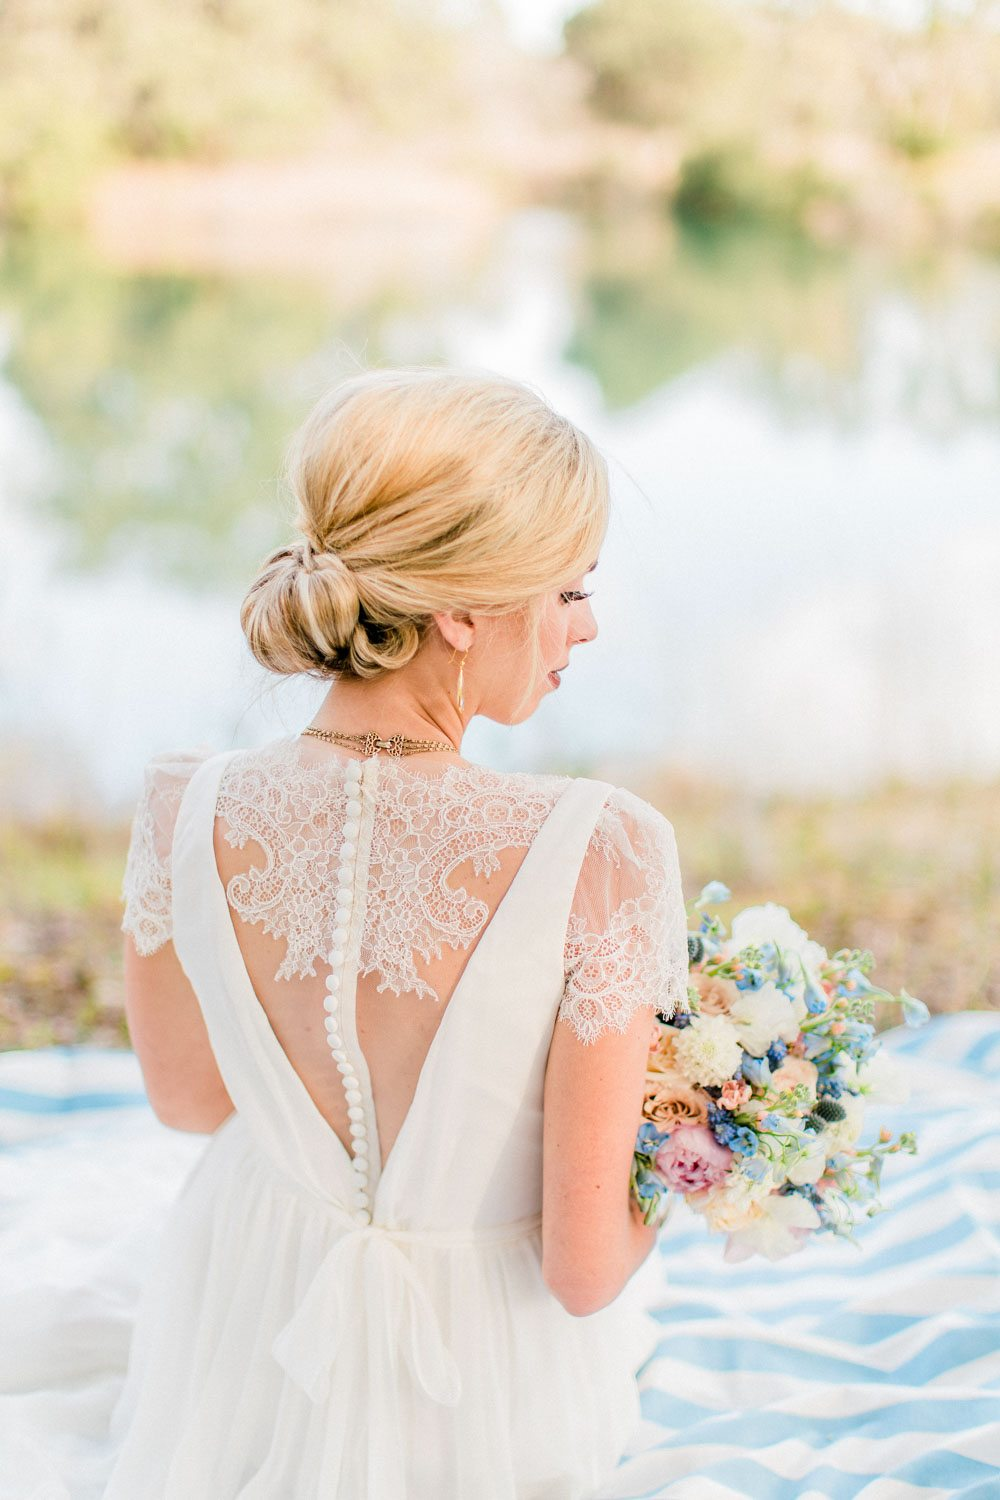 lace wedding dress back detail with updo hair holding bouquet